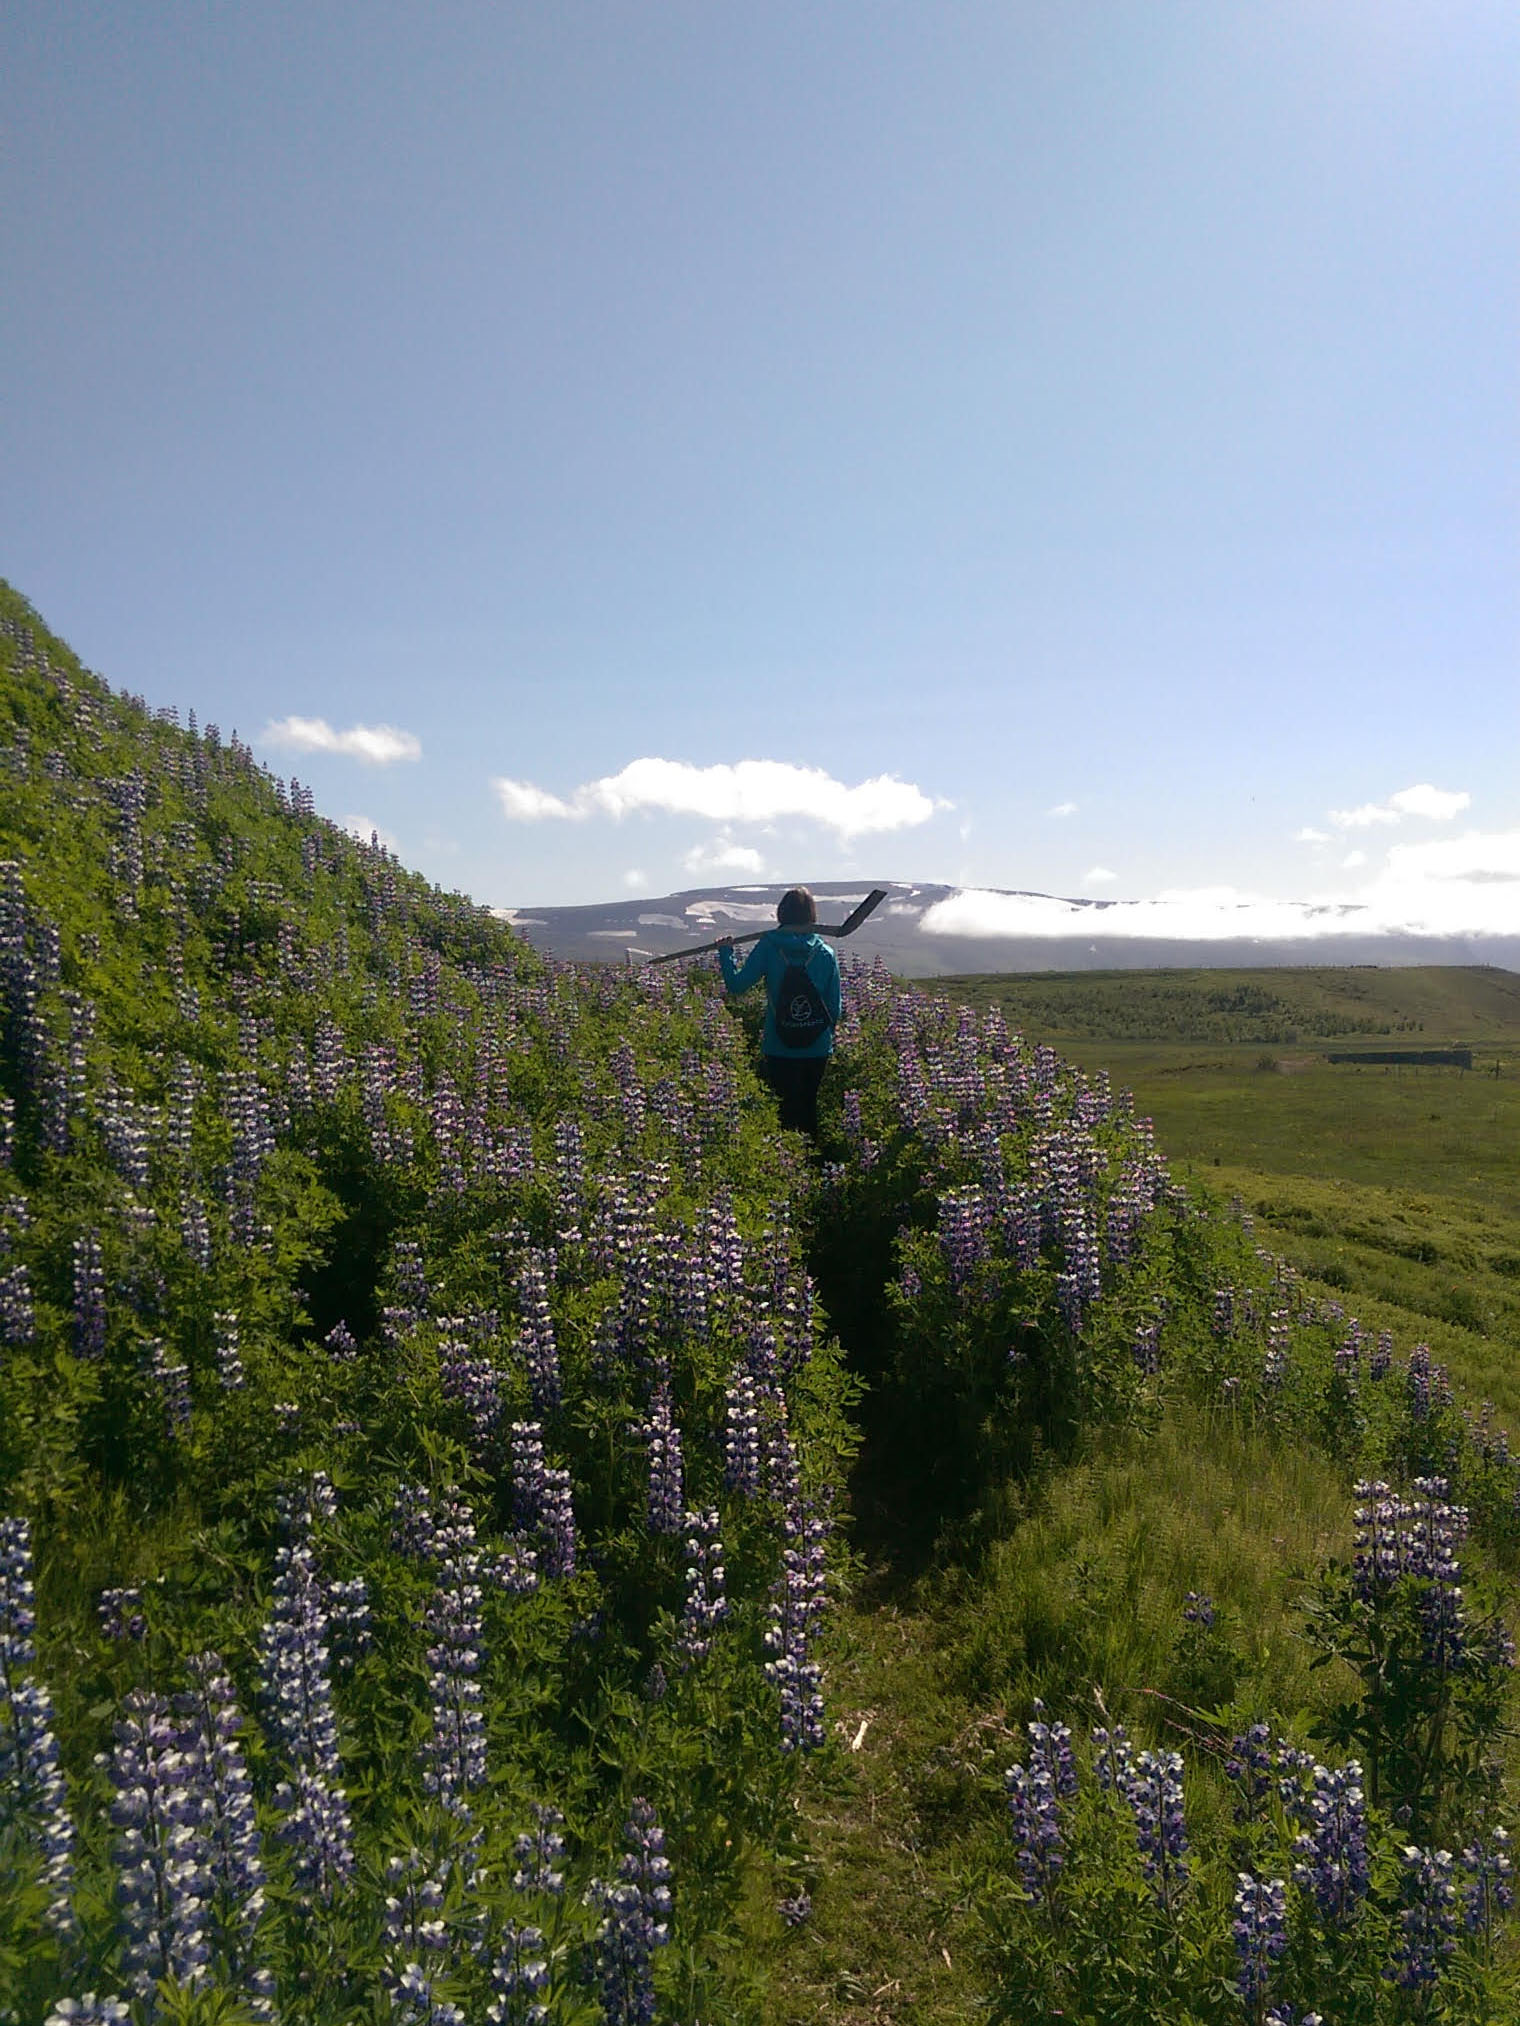 Walking through the Lupine flowers to get to a rhubarb plant